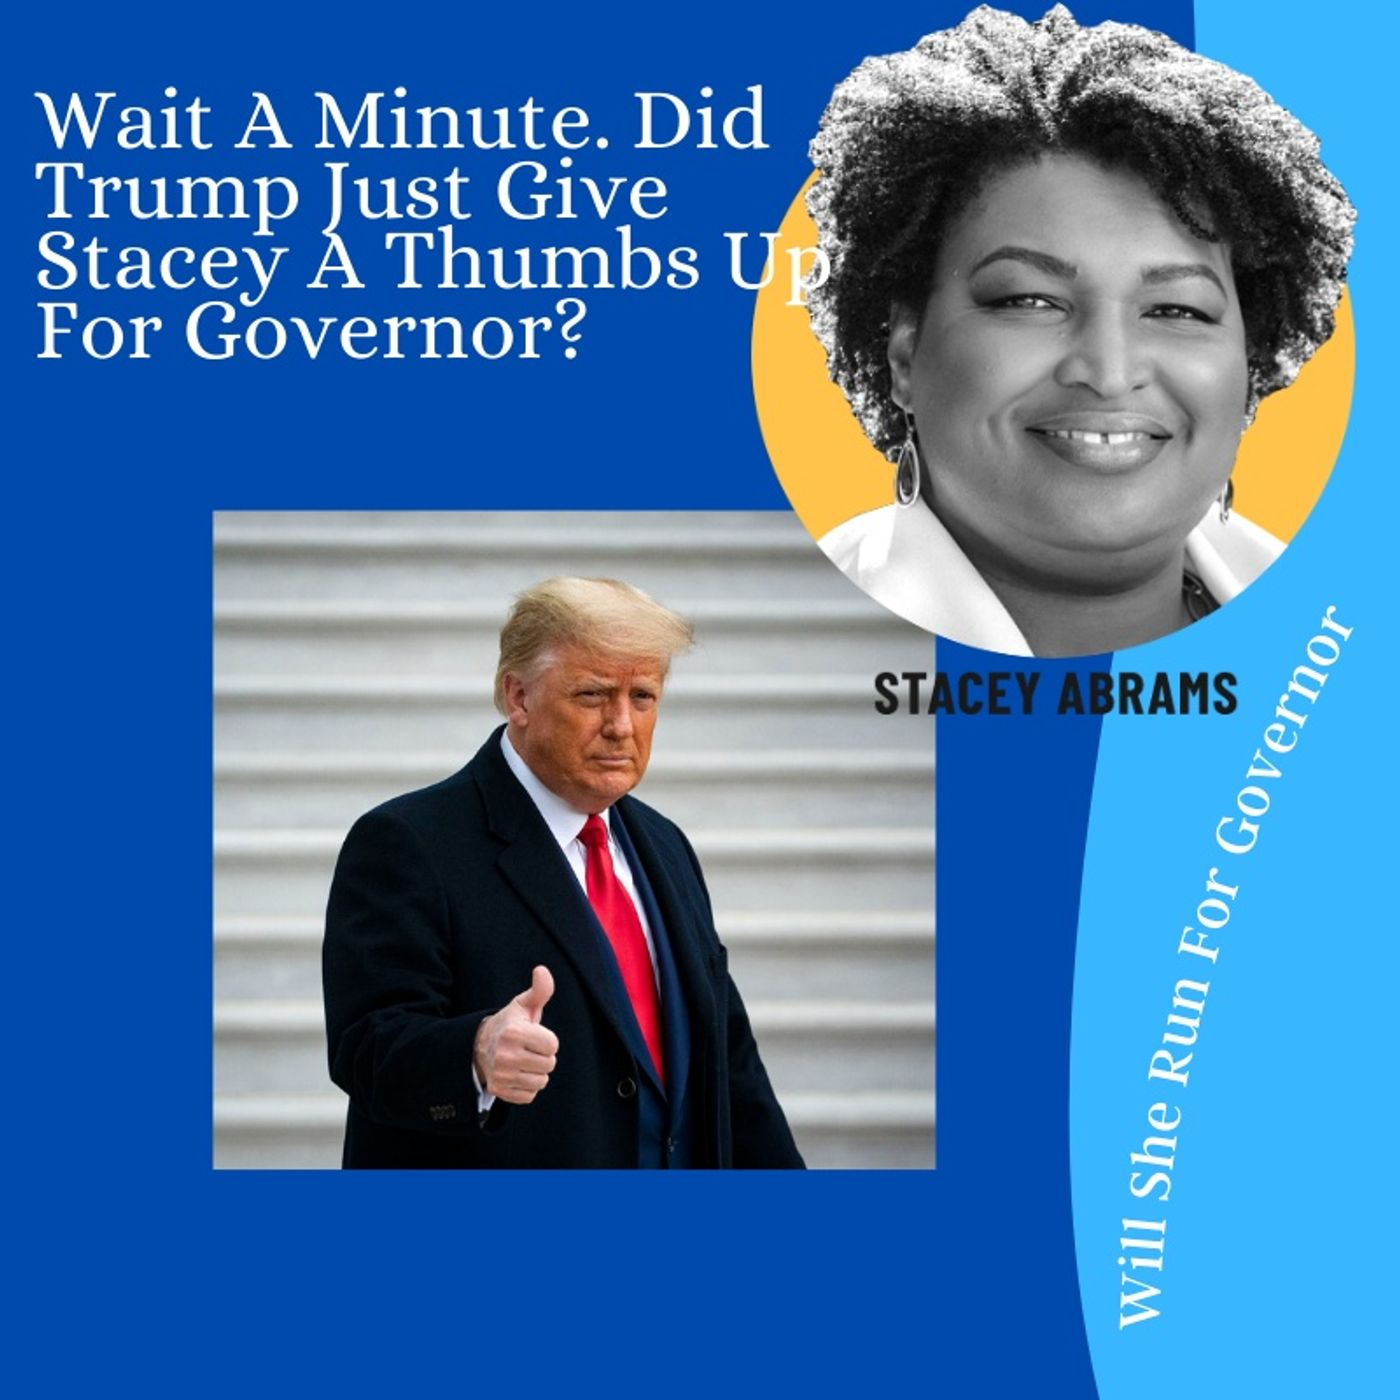 Wait A Minute.  Did Trump Just Give Stacey Abrams A Thumbs Up To Run Against Kemp?